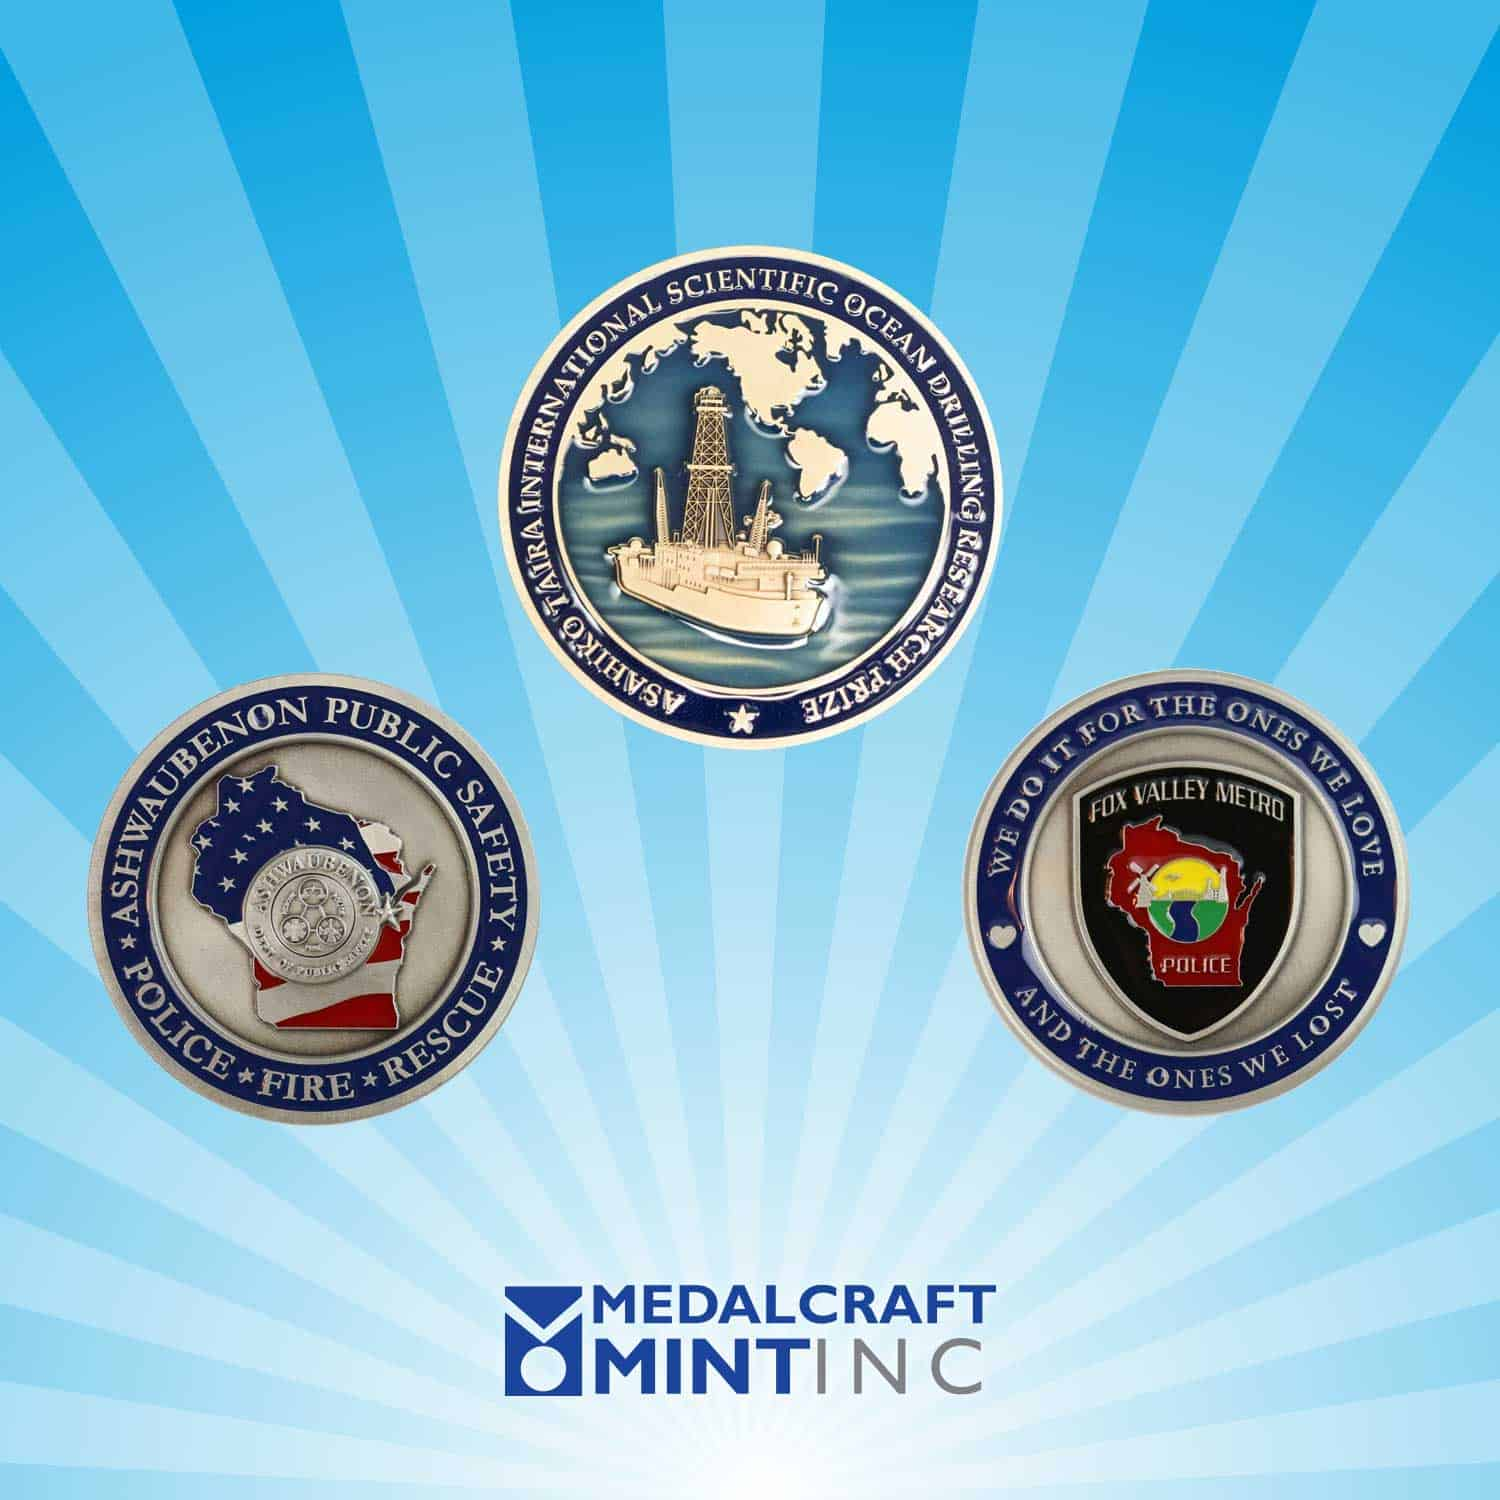 Enamel challenge coins are popular law enforcement medals